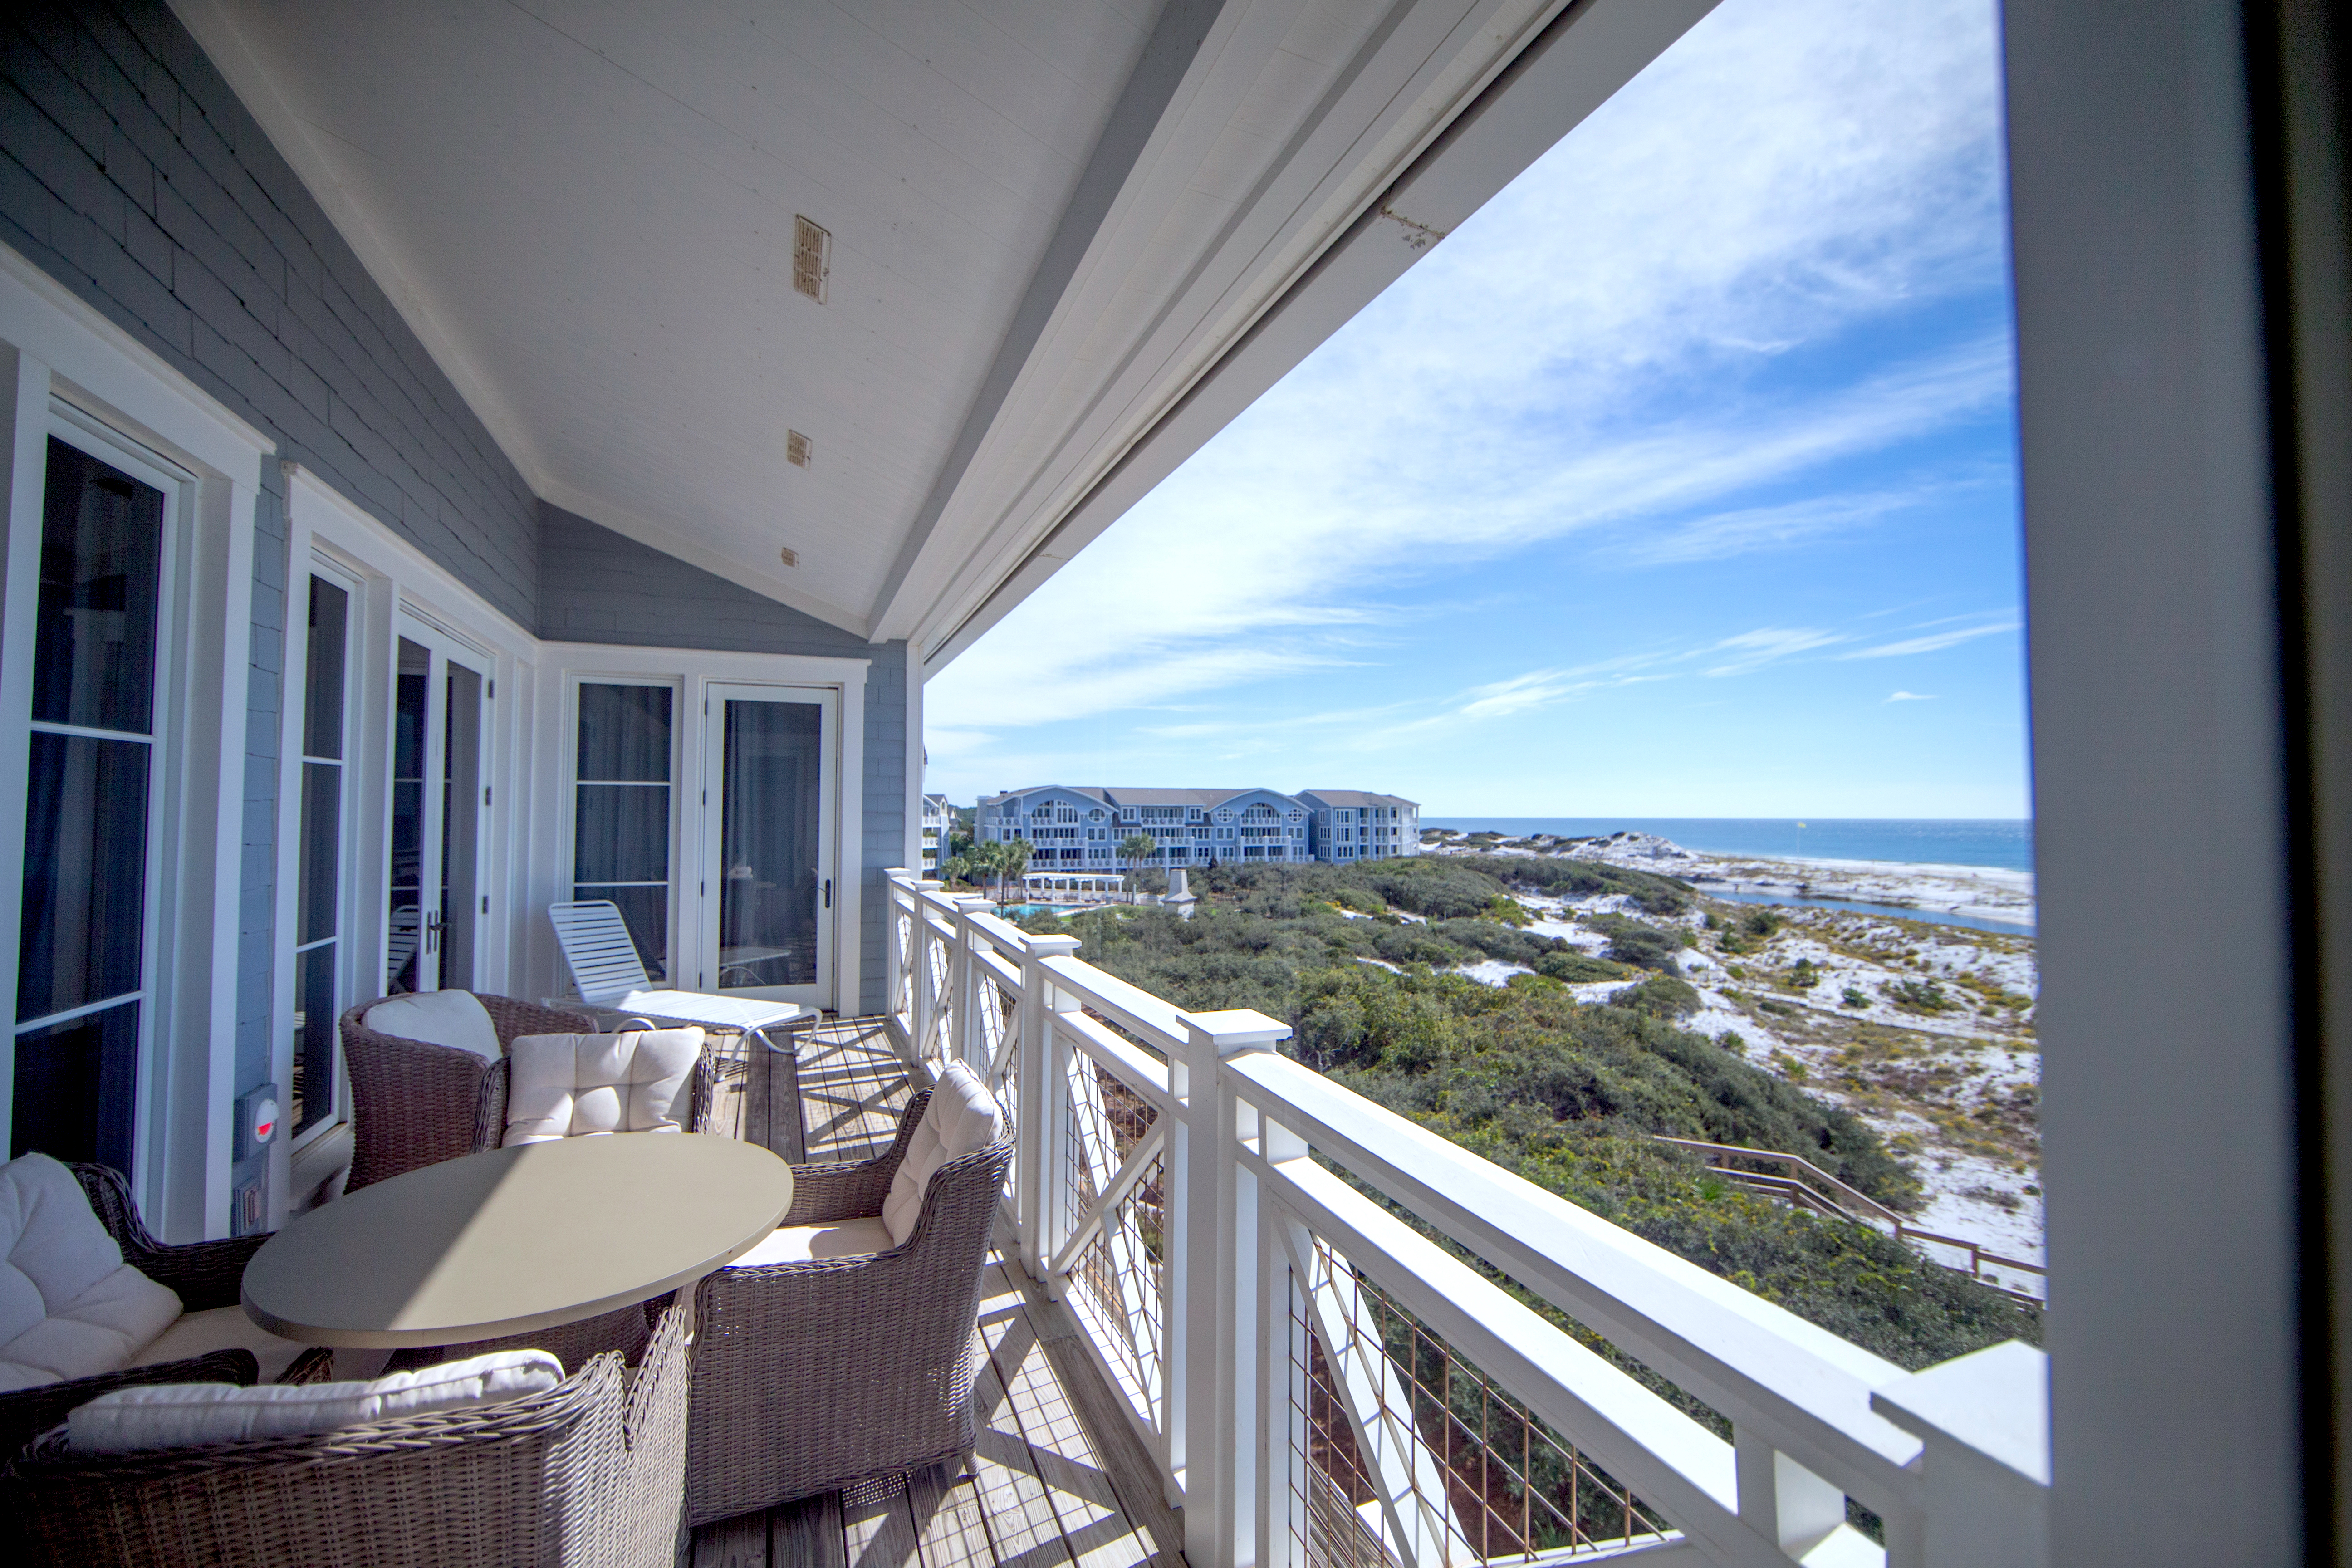 Enjoy watching the dolphins play in the surf from this spacious covered balcony rain or shine.